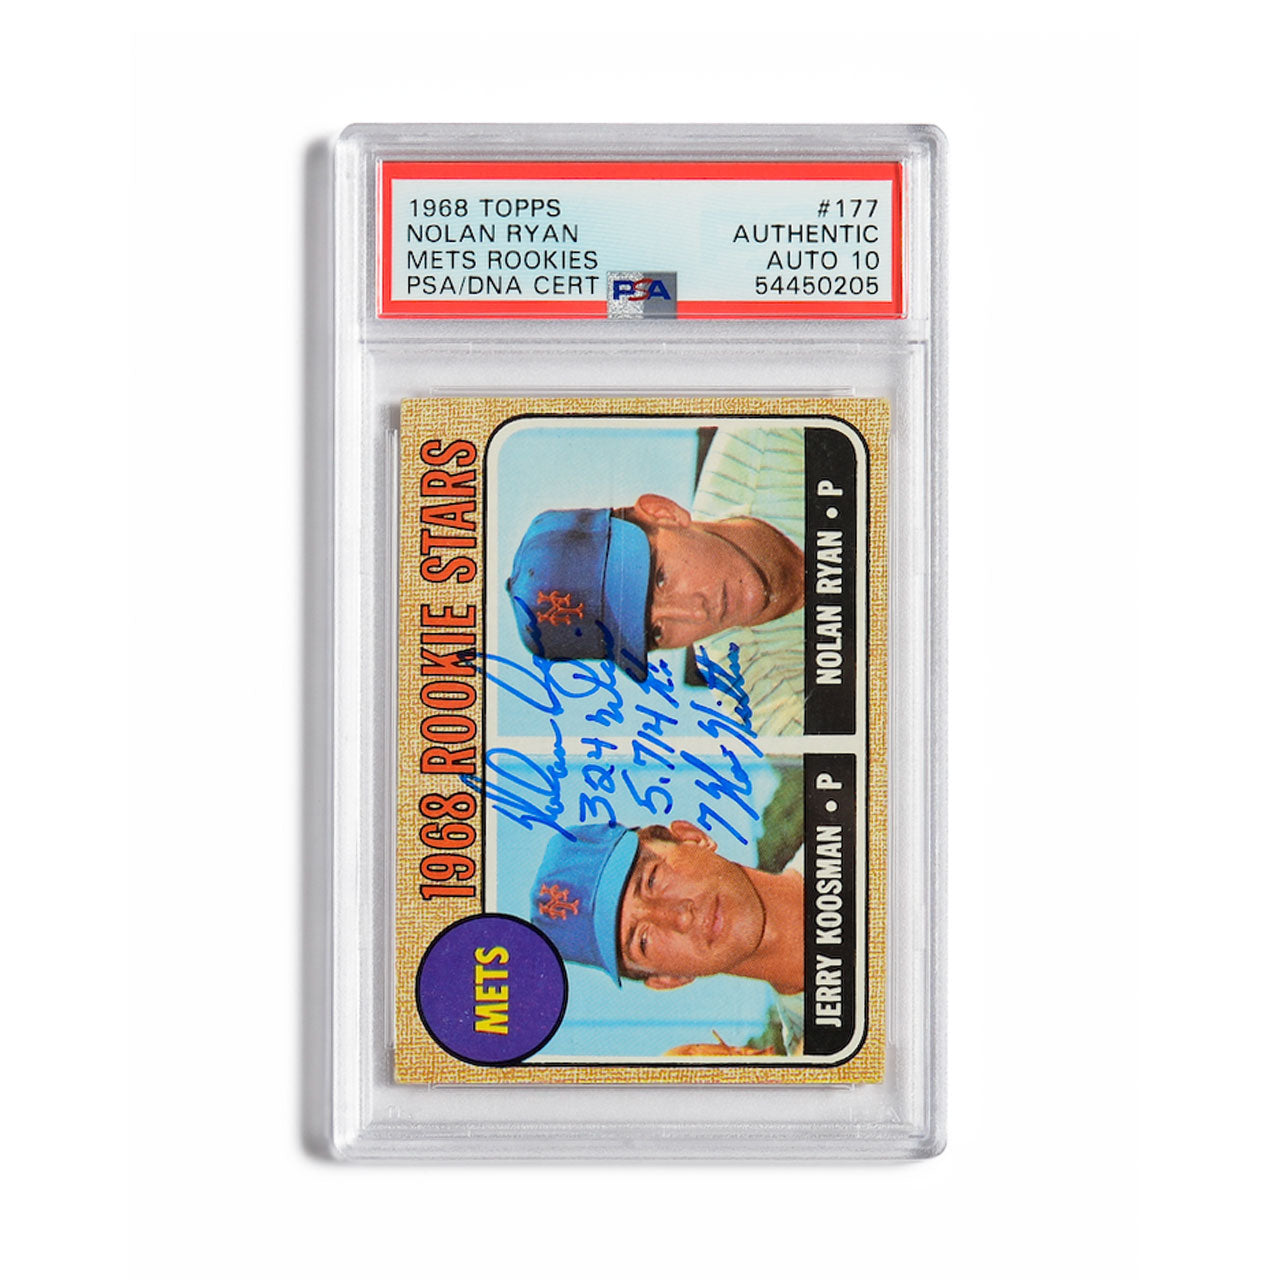 1968 Topps Nolan Ryan Autographed Rookie Card